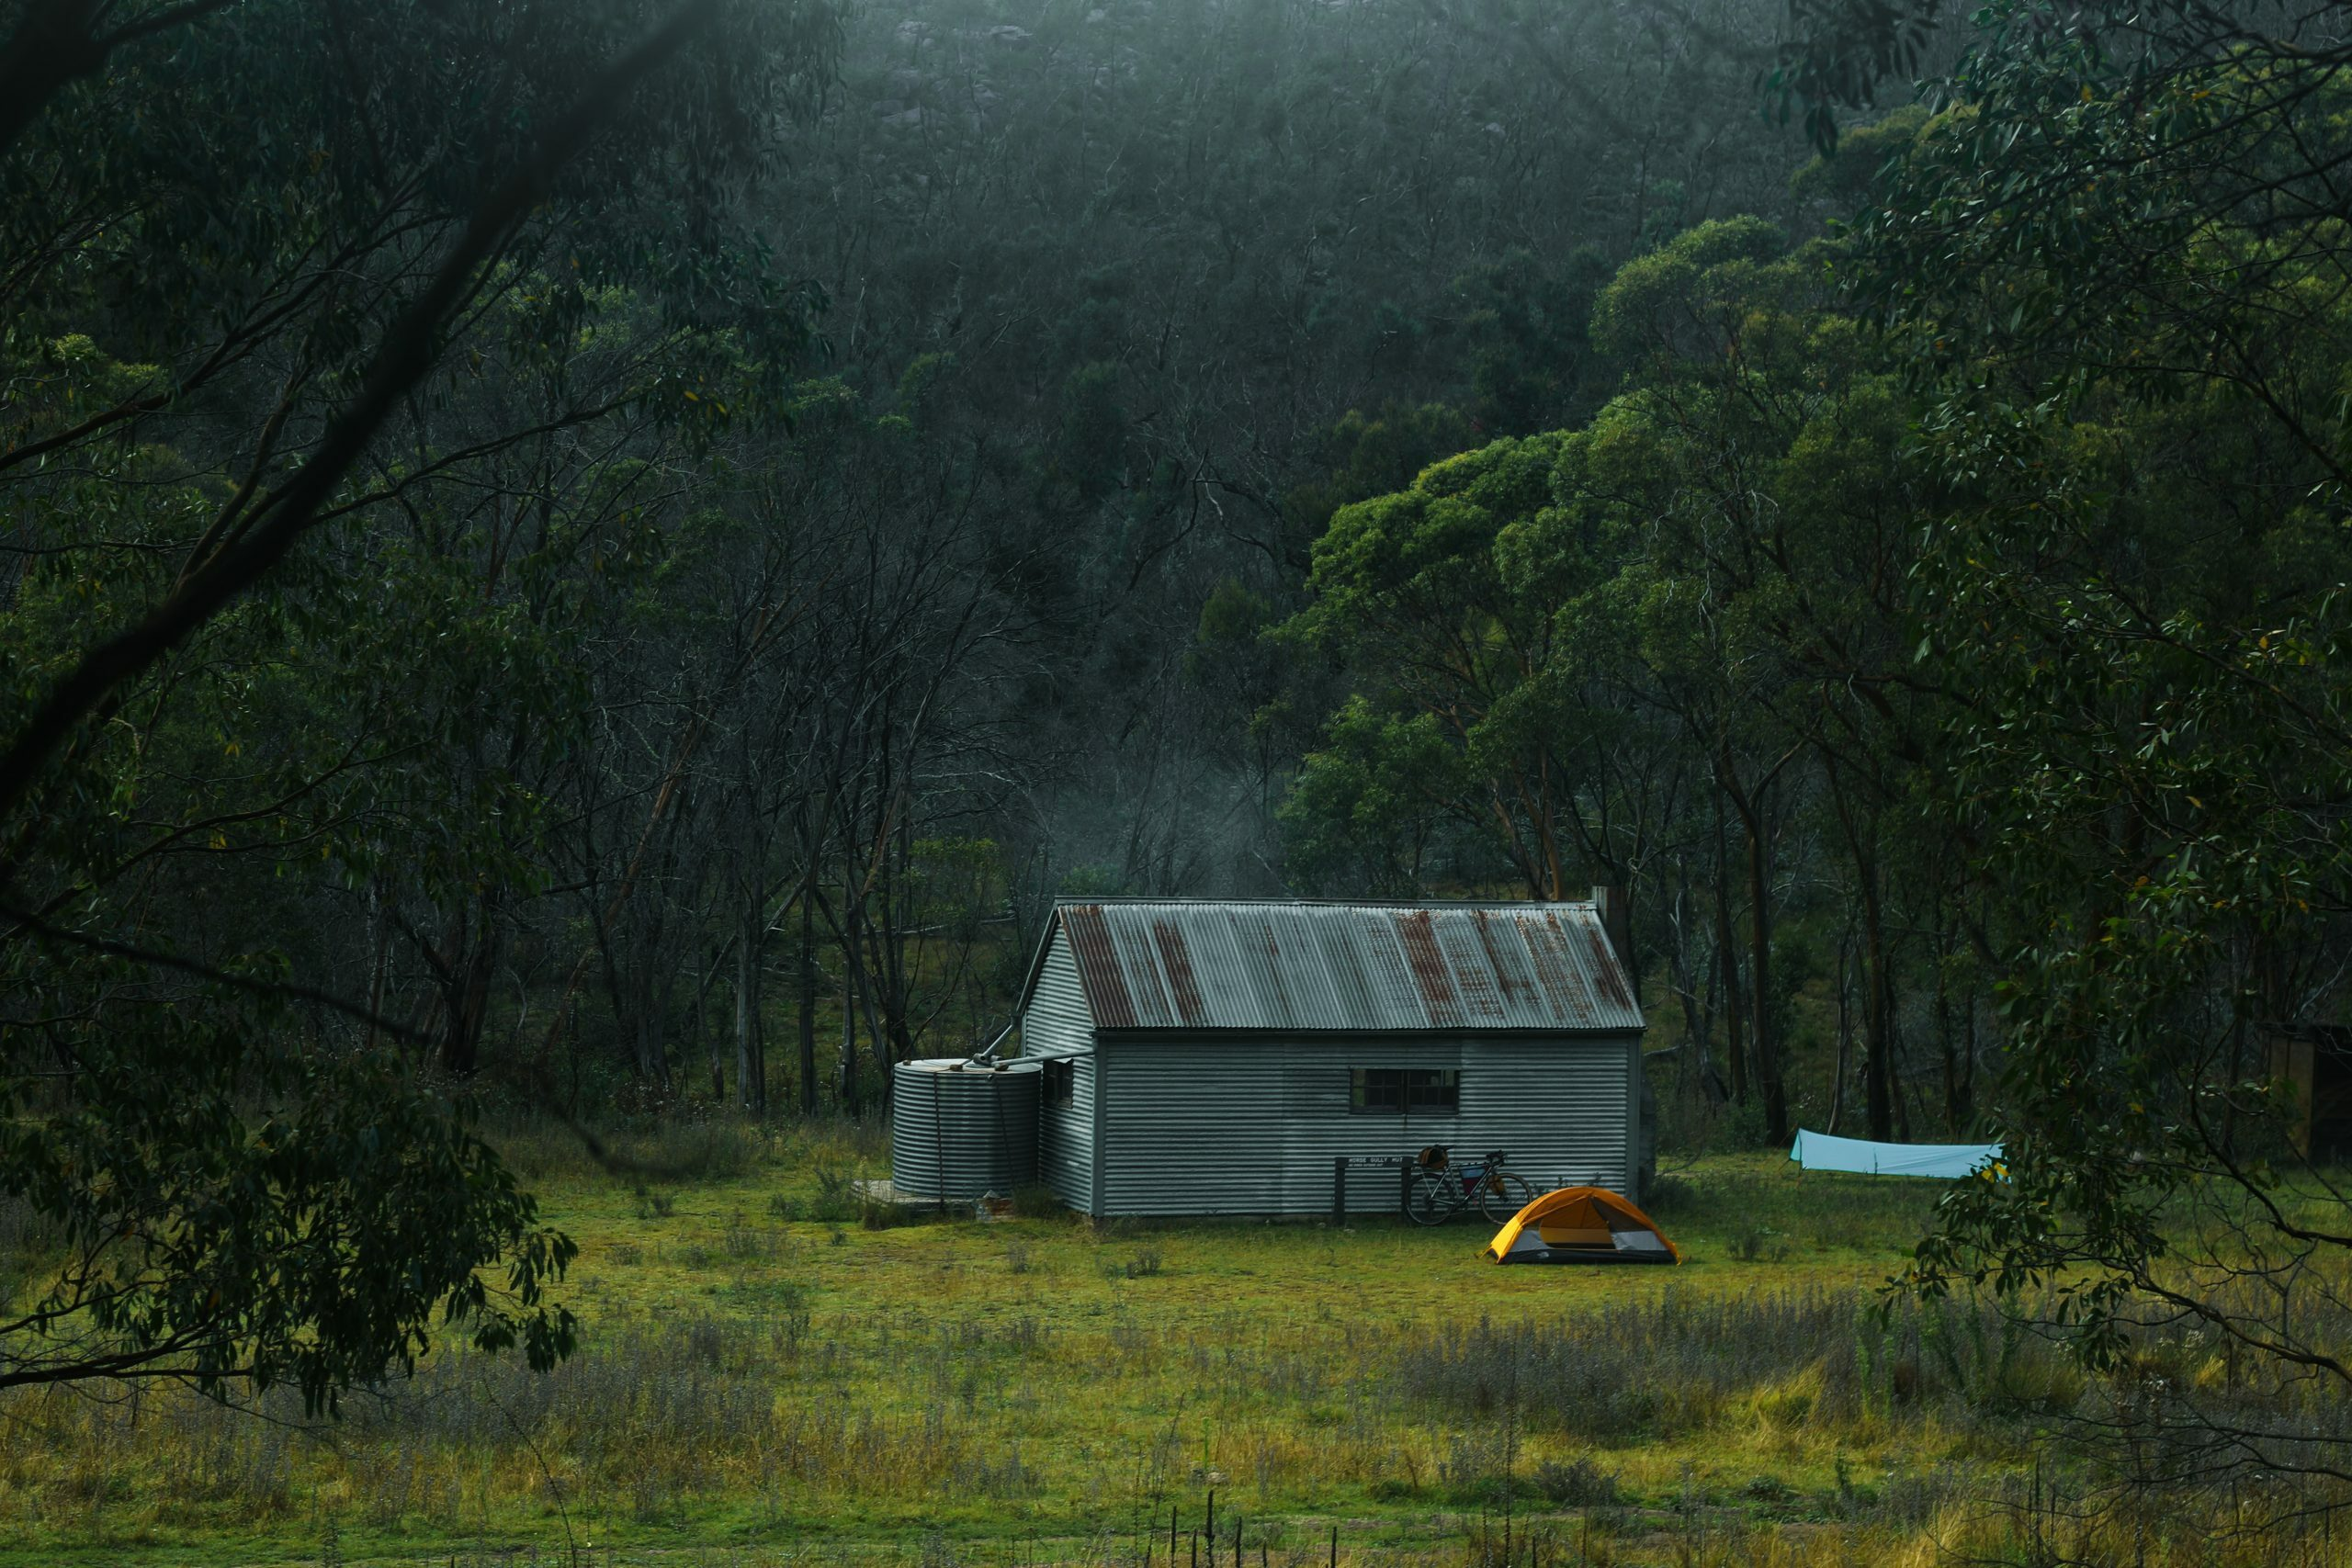 Camping outside Horse Gully Hut